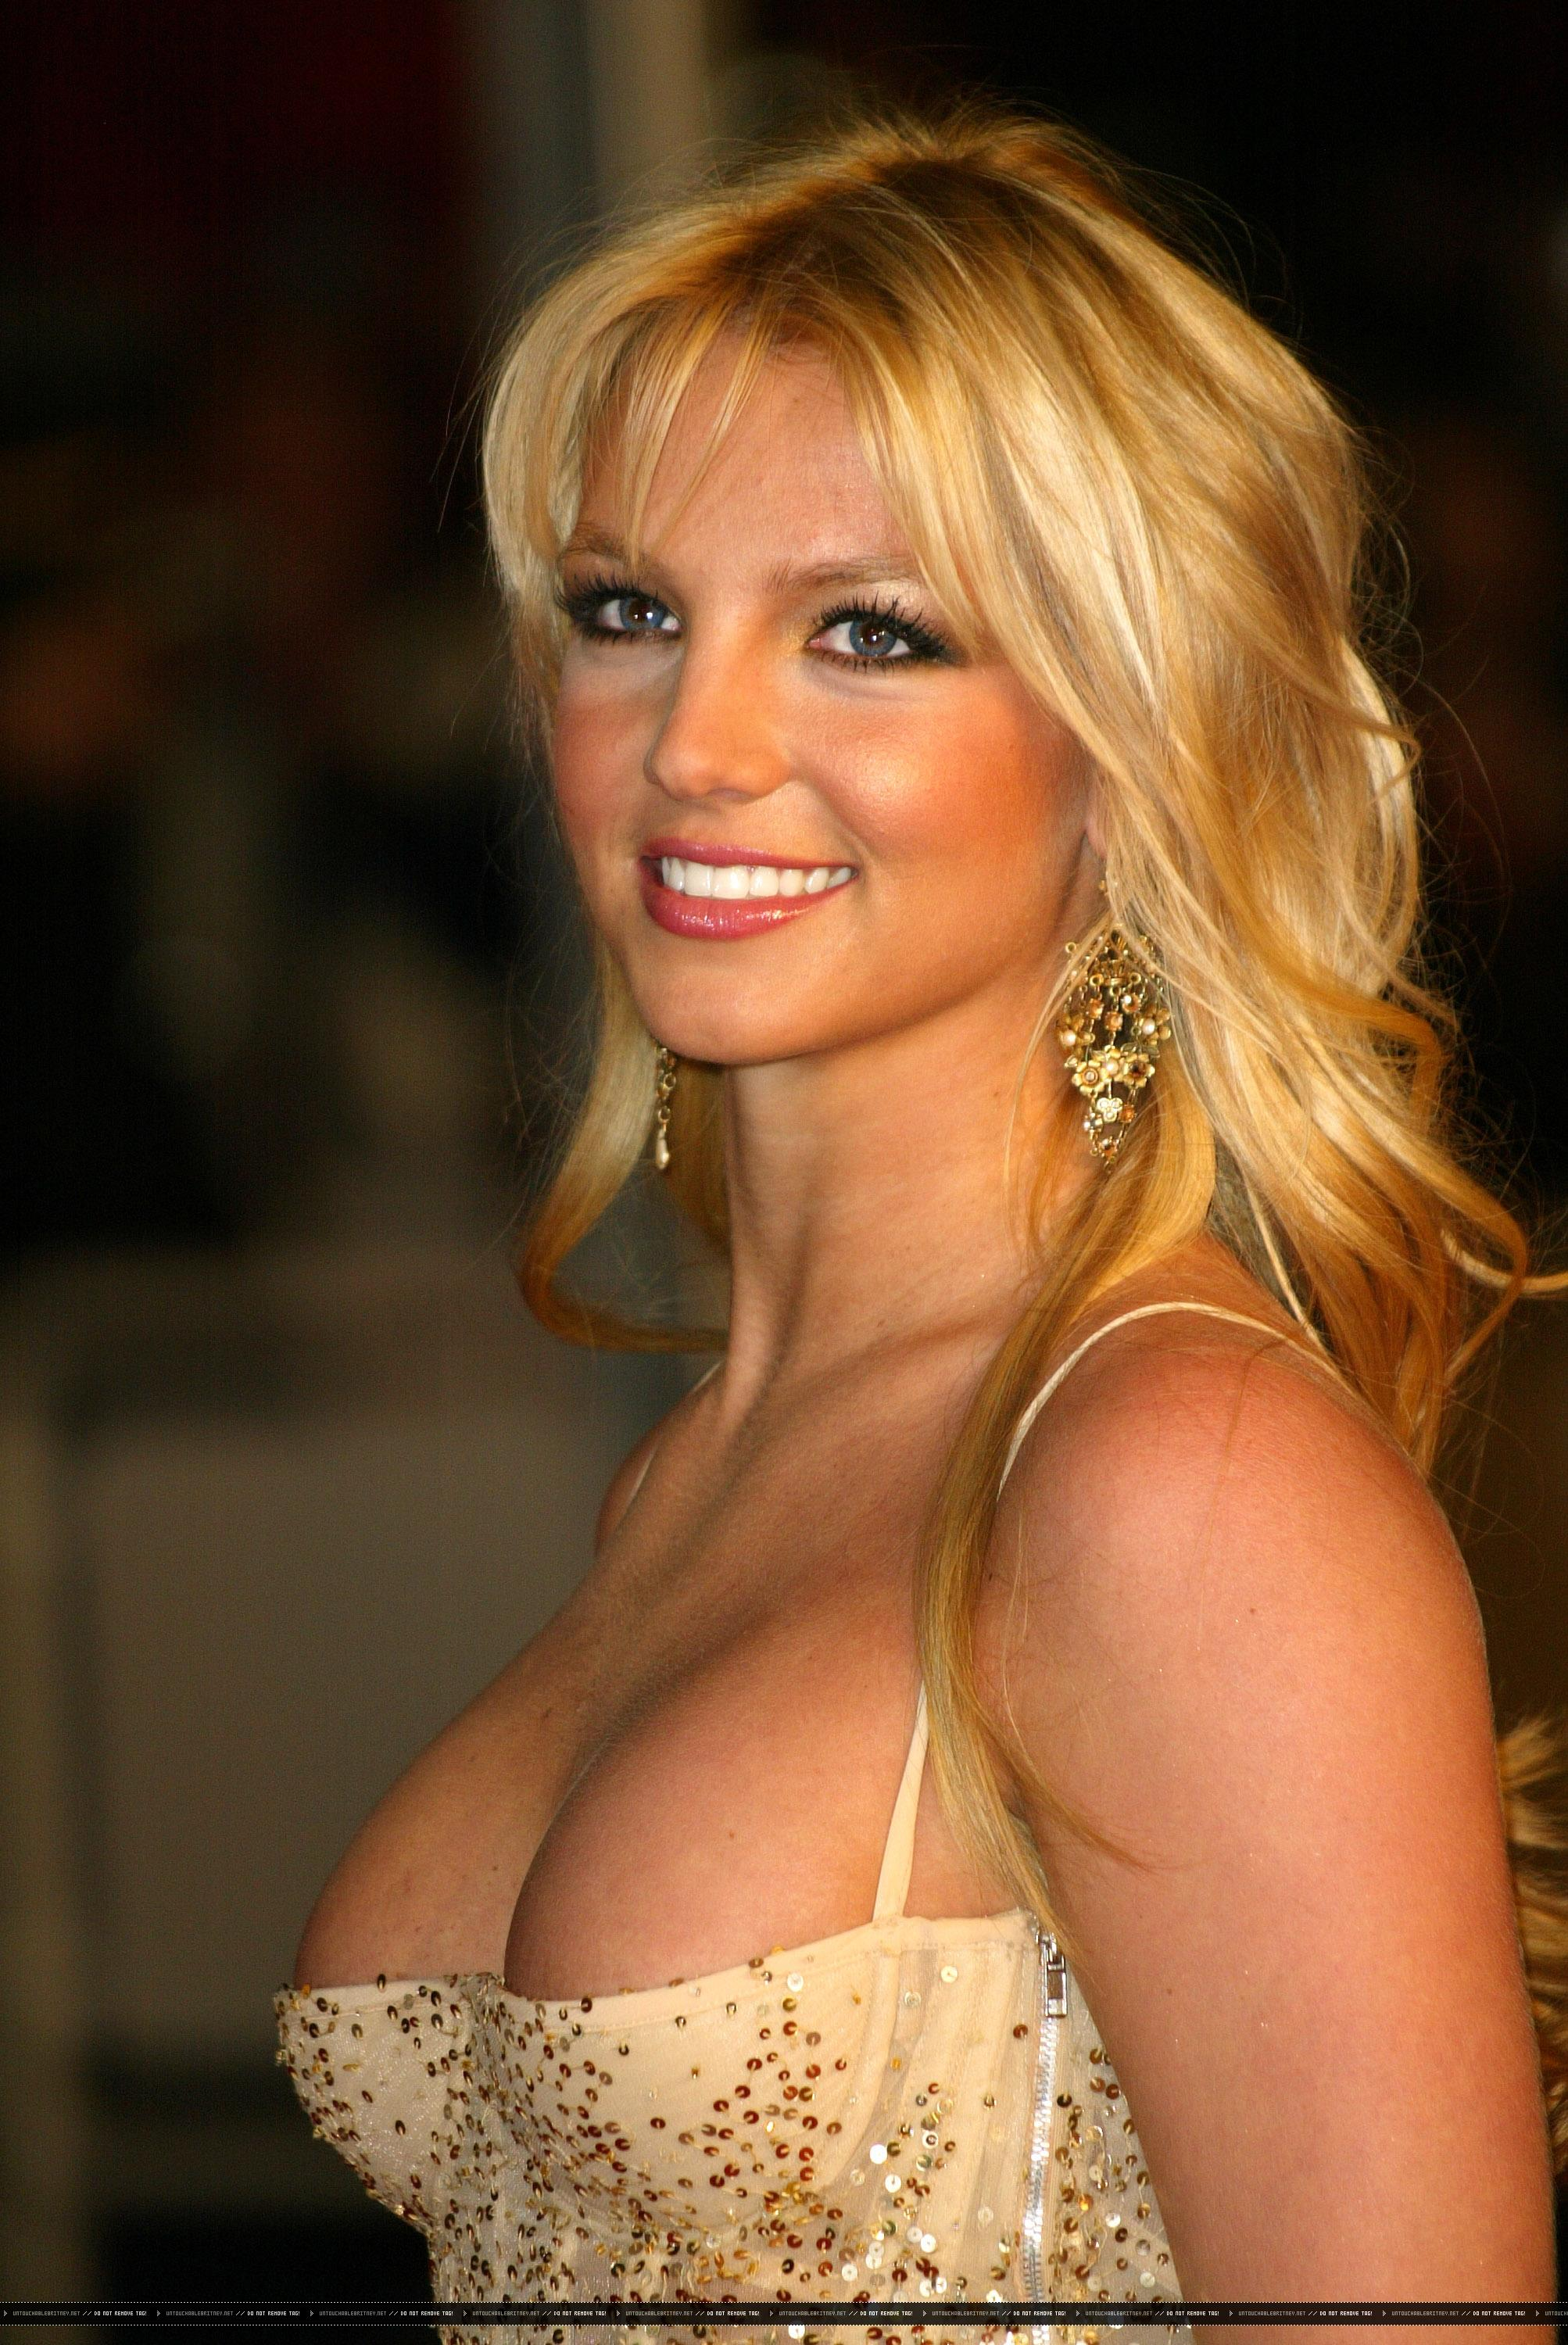 Britney Spears boobs show